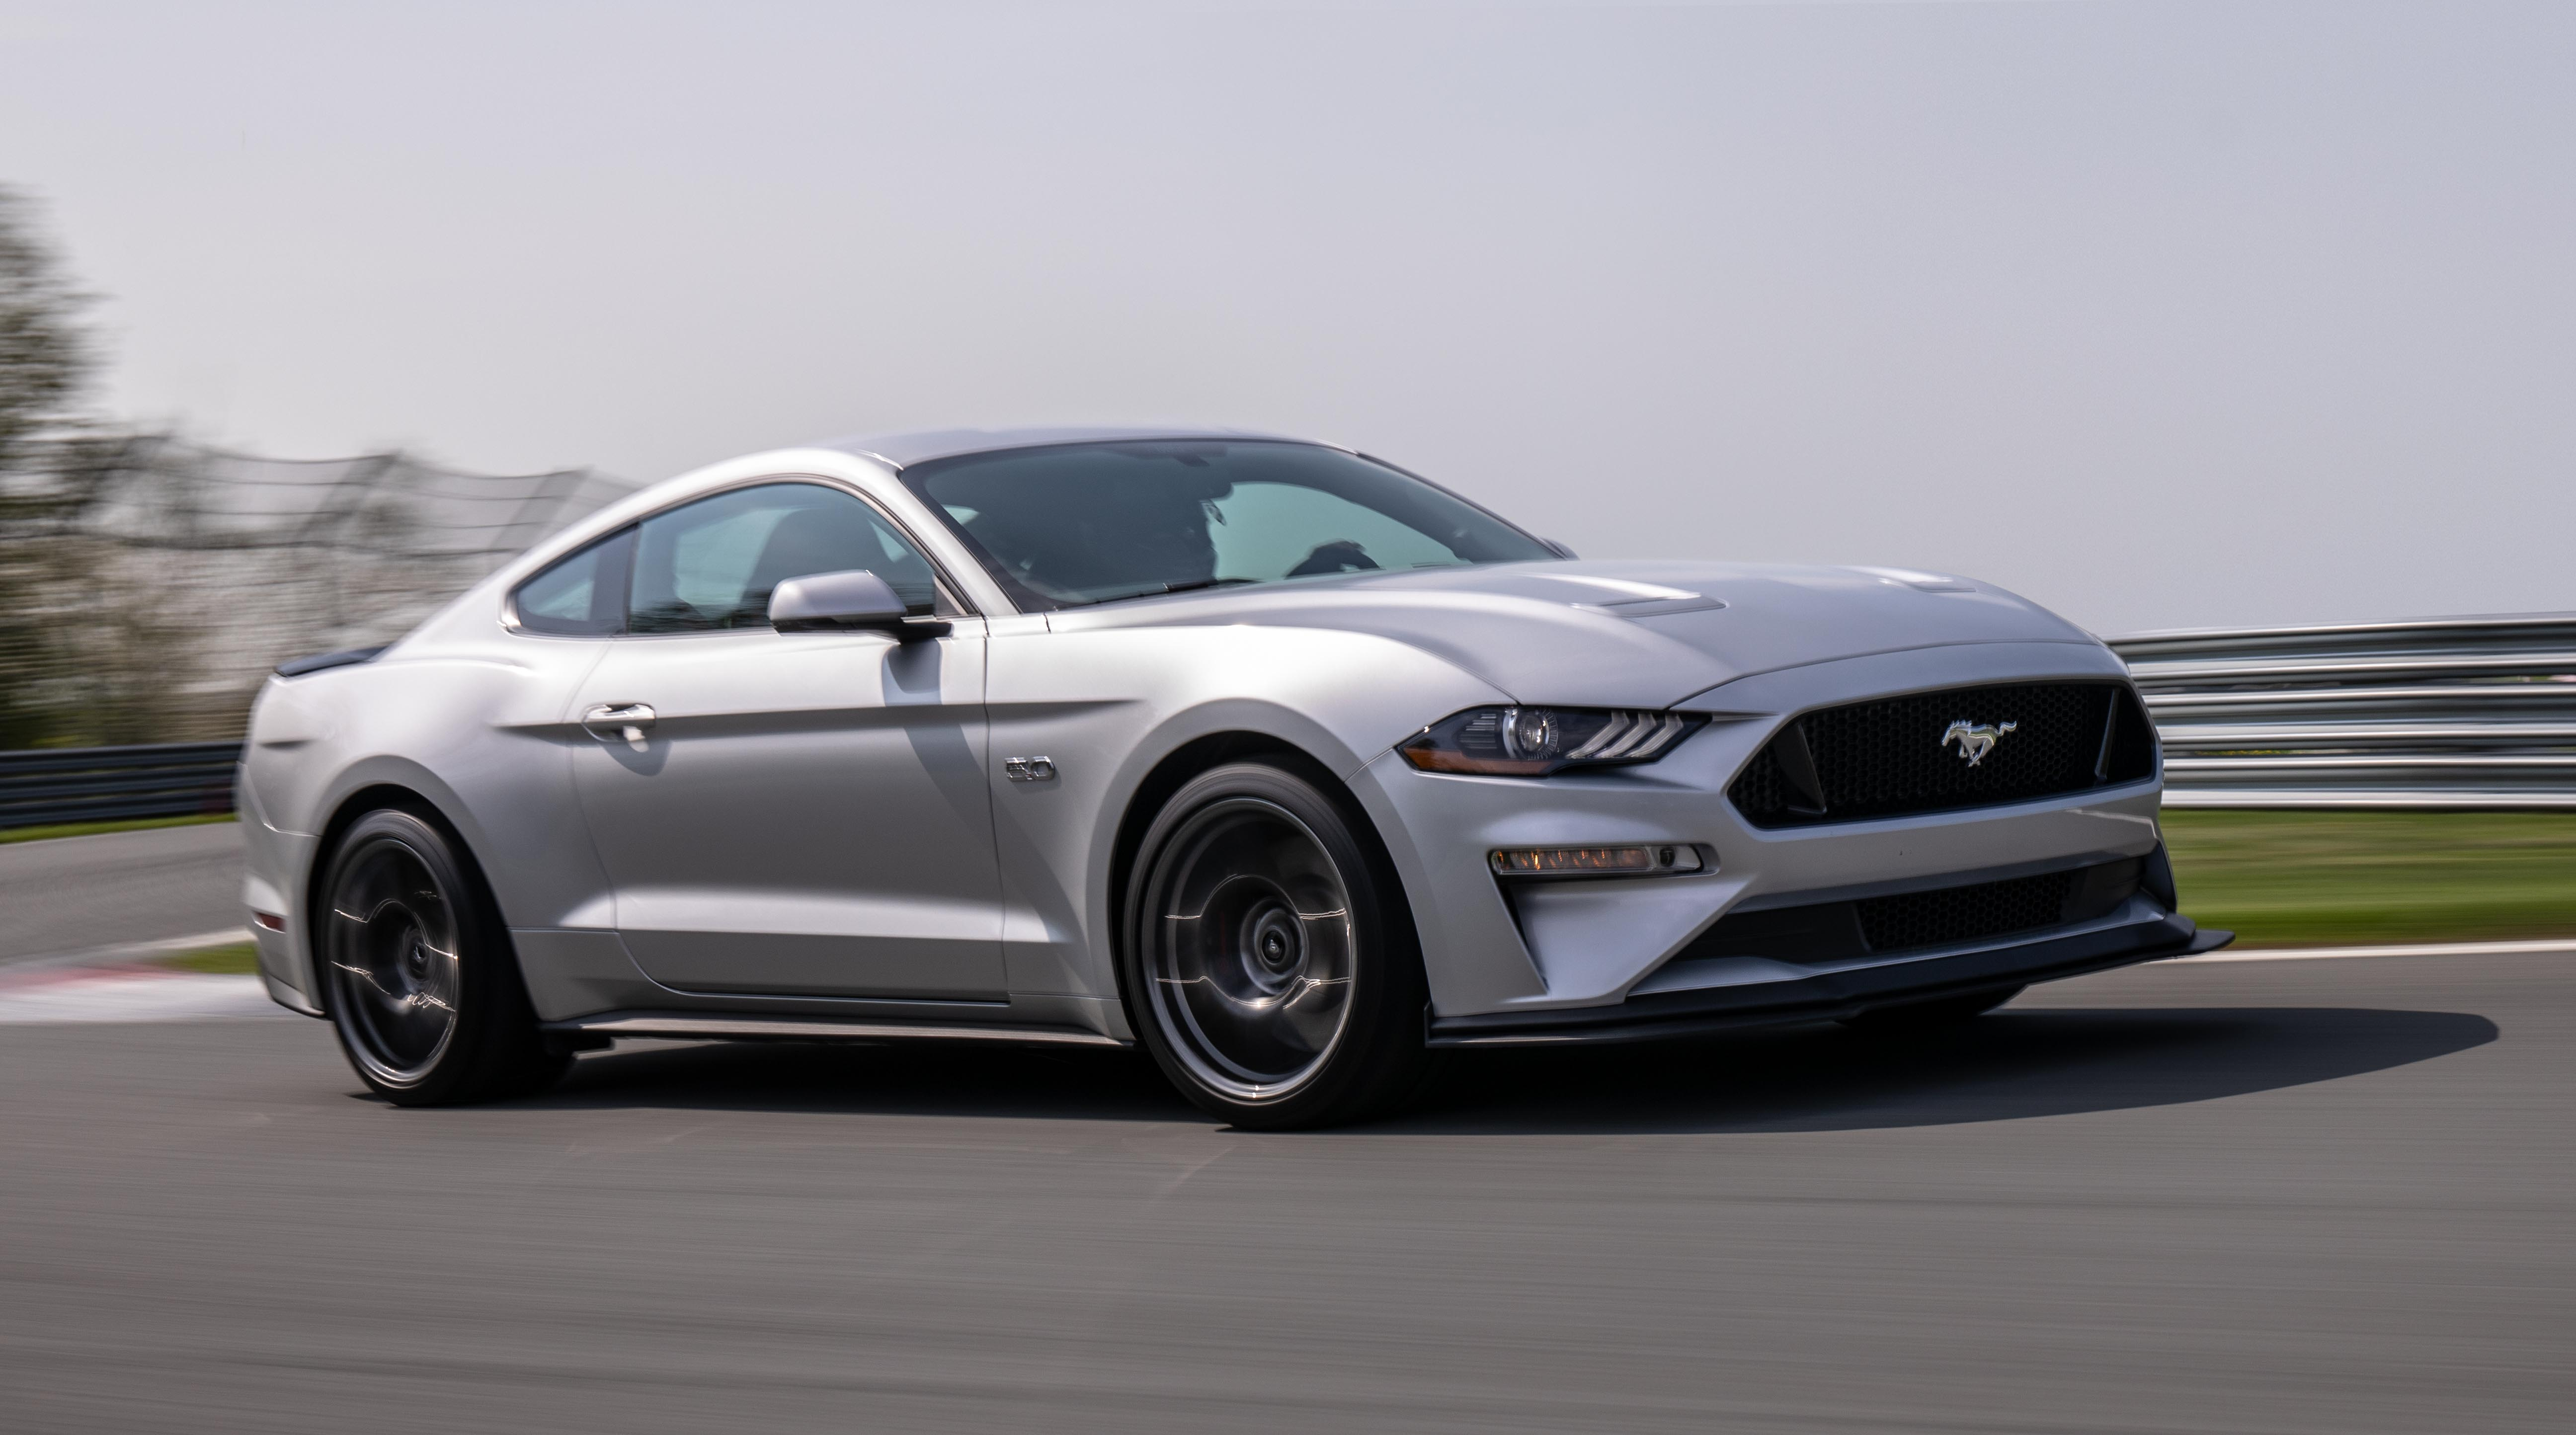 2018 Ford Mustang GT Performance Pack 2 passenger low